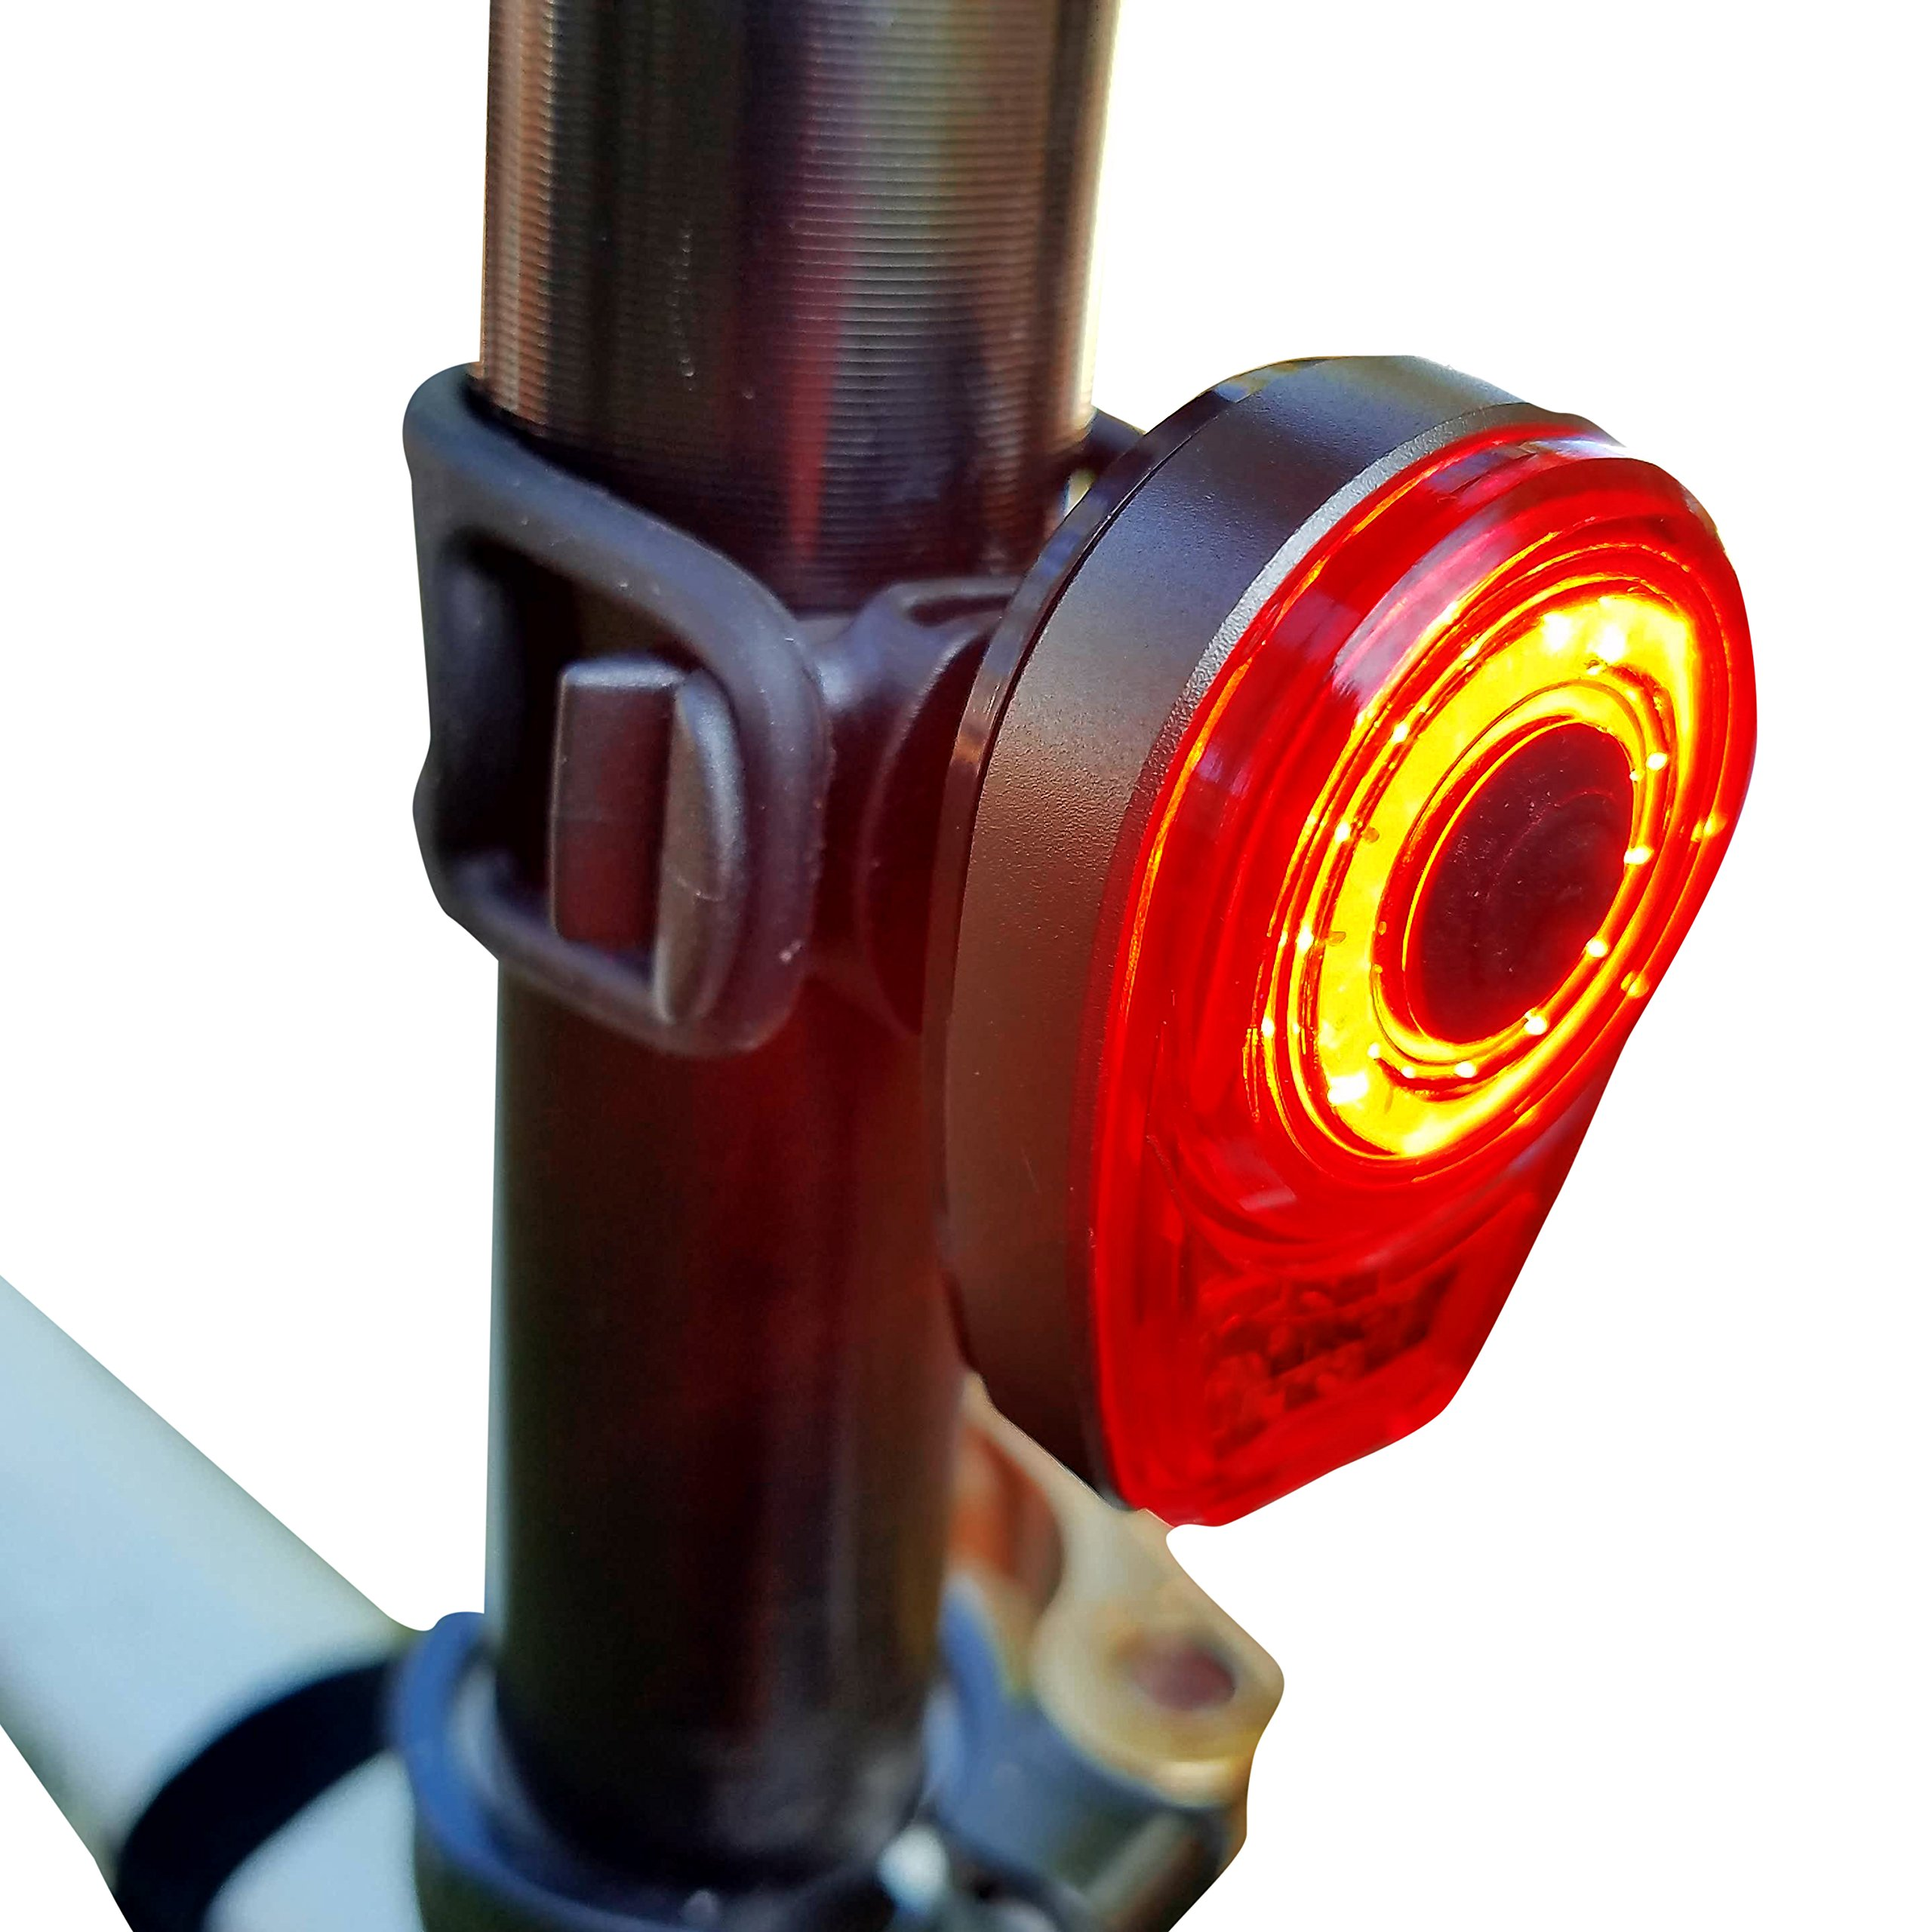 Bright Eyes Taillight - USB Rechargeable with Extreme Bright COB technology - 6 modes (3 Brightness Levels) - No Tools - Install On Bicycle, Helmet, or Clip on Clothing For Safety by Bright Eyes